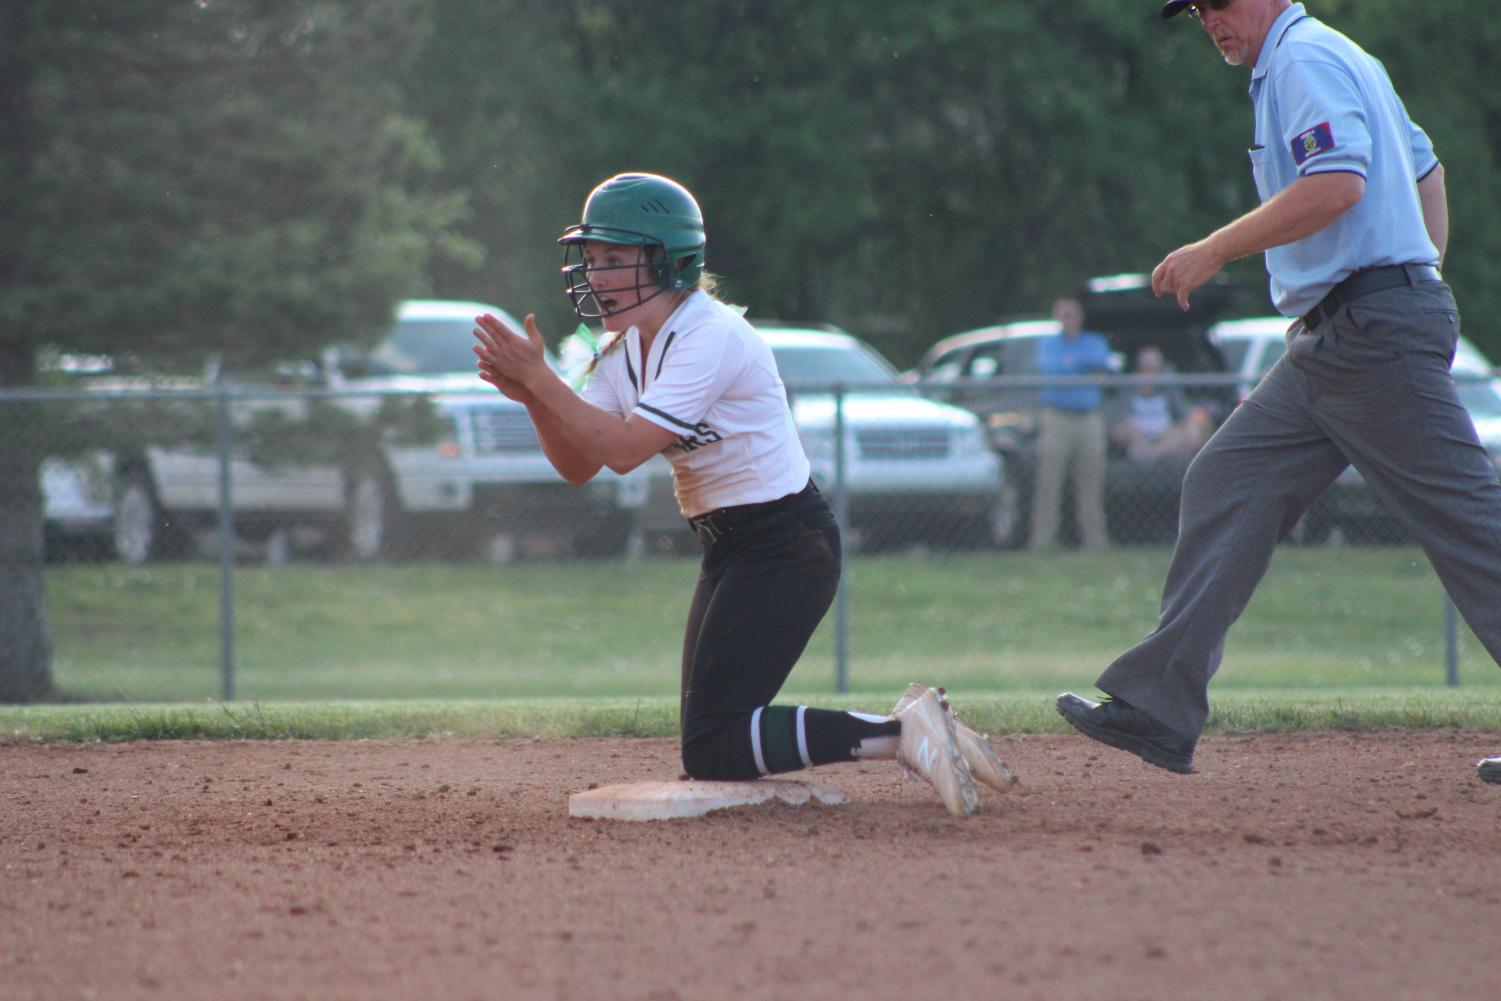 Derby Softball 2nd round of regionals (photos by Kaitlyn Strobel)